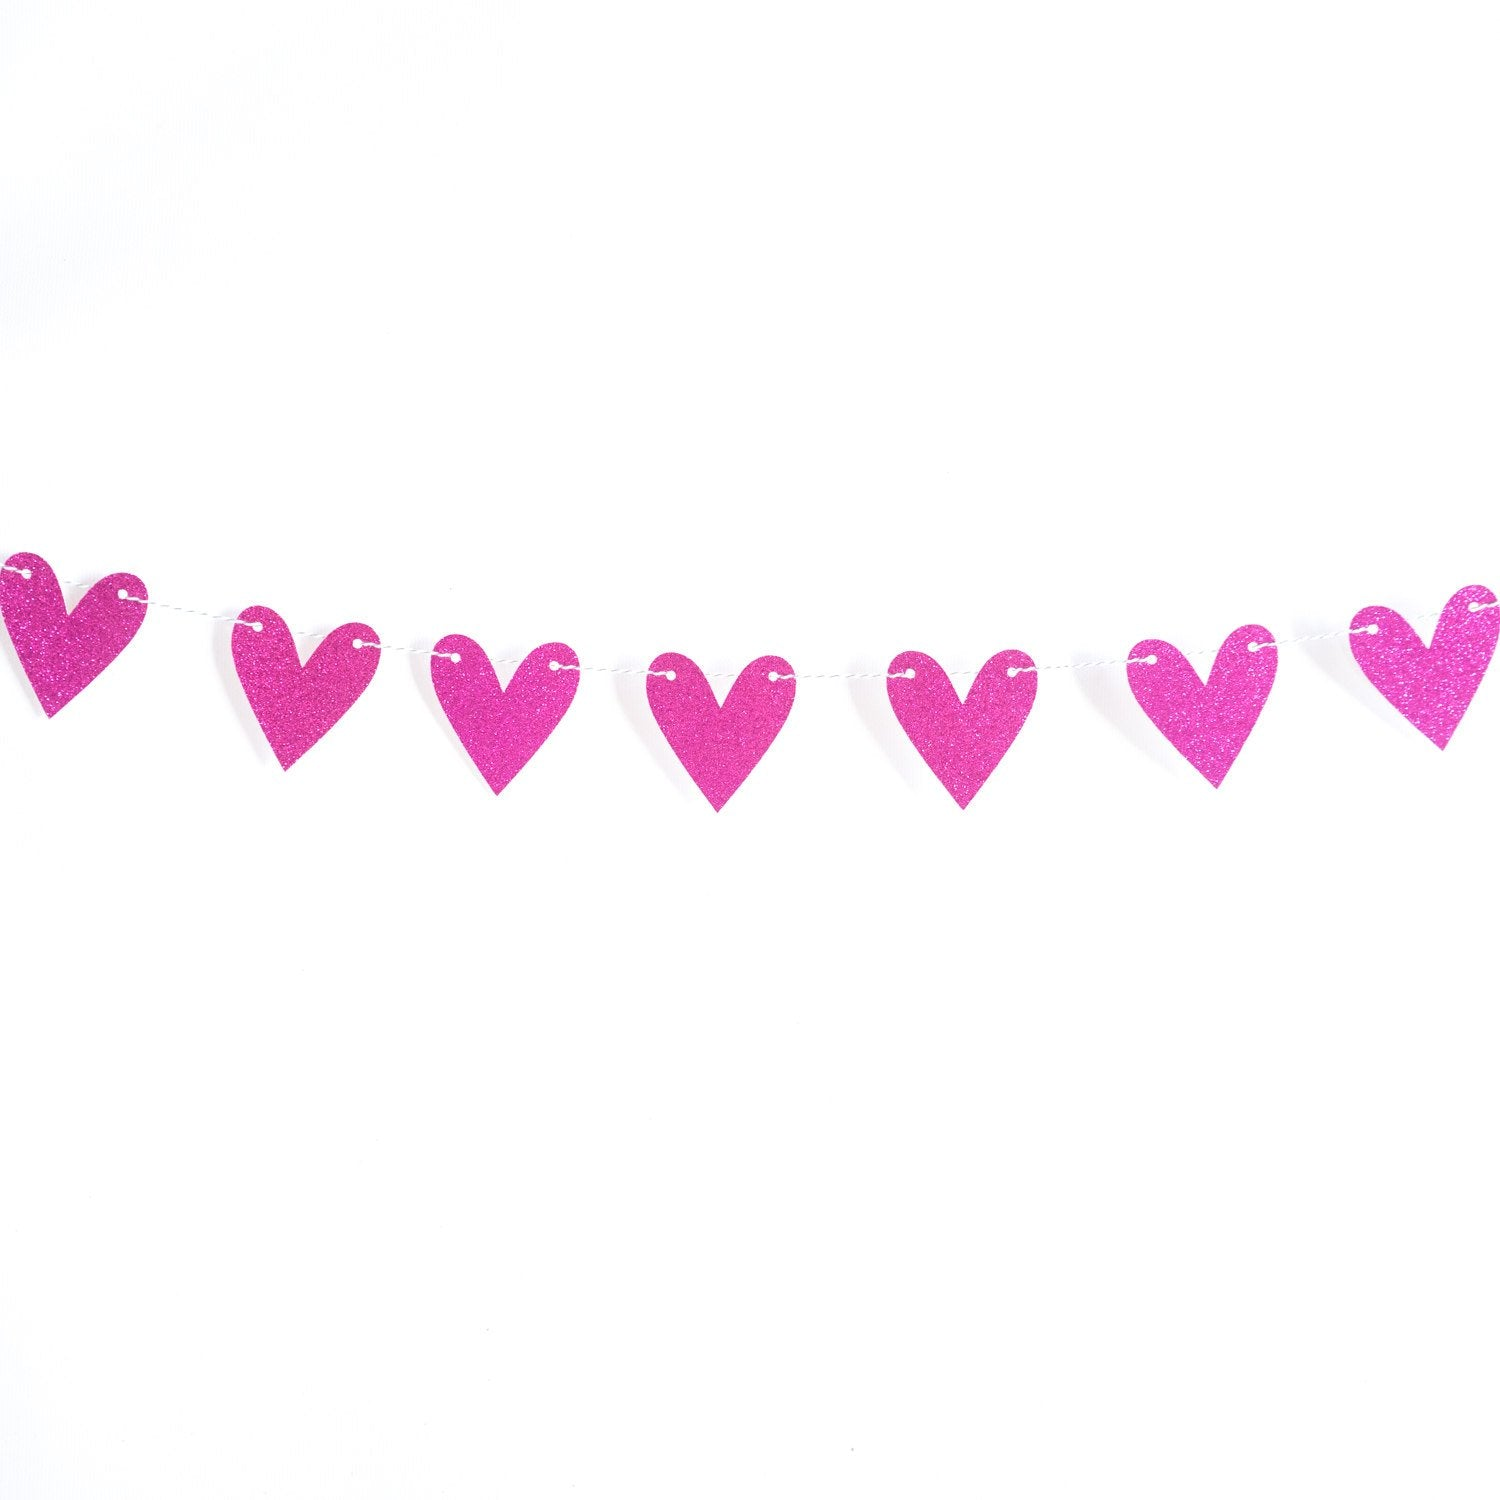 Heart Garland | Fuchsia Bright Pink